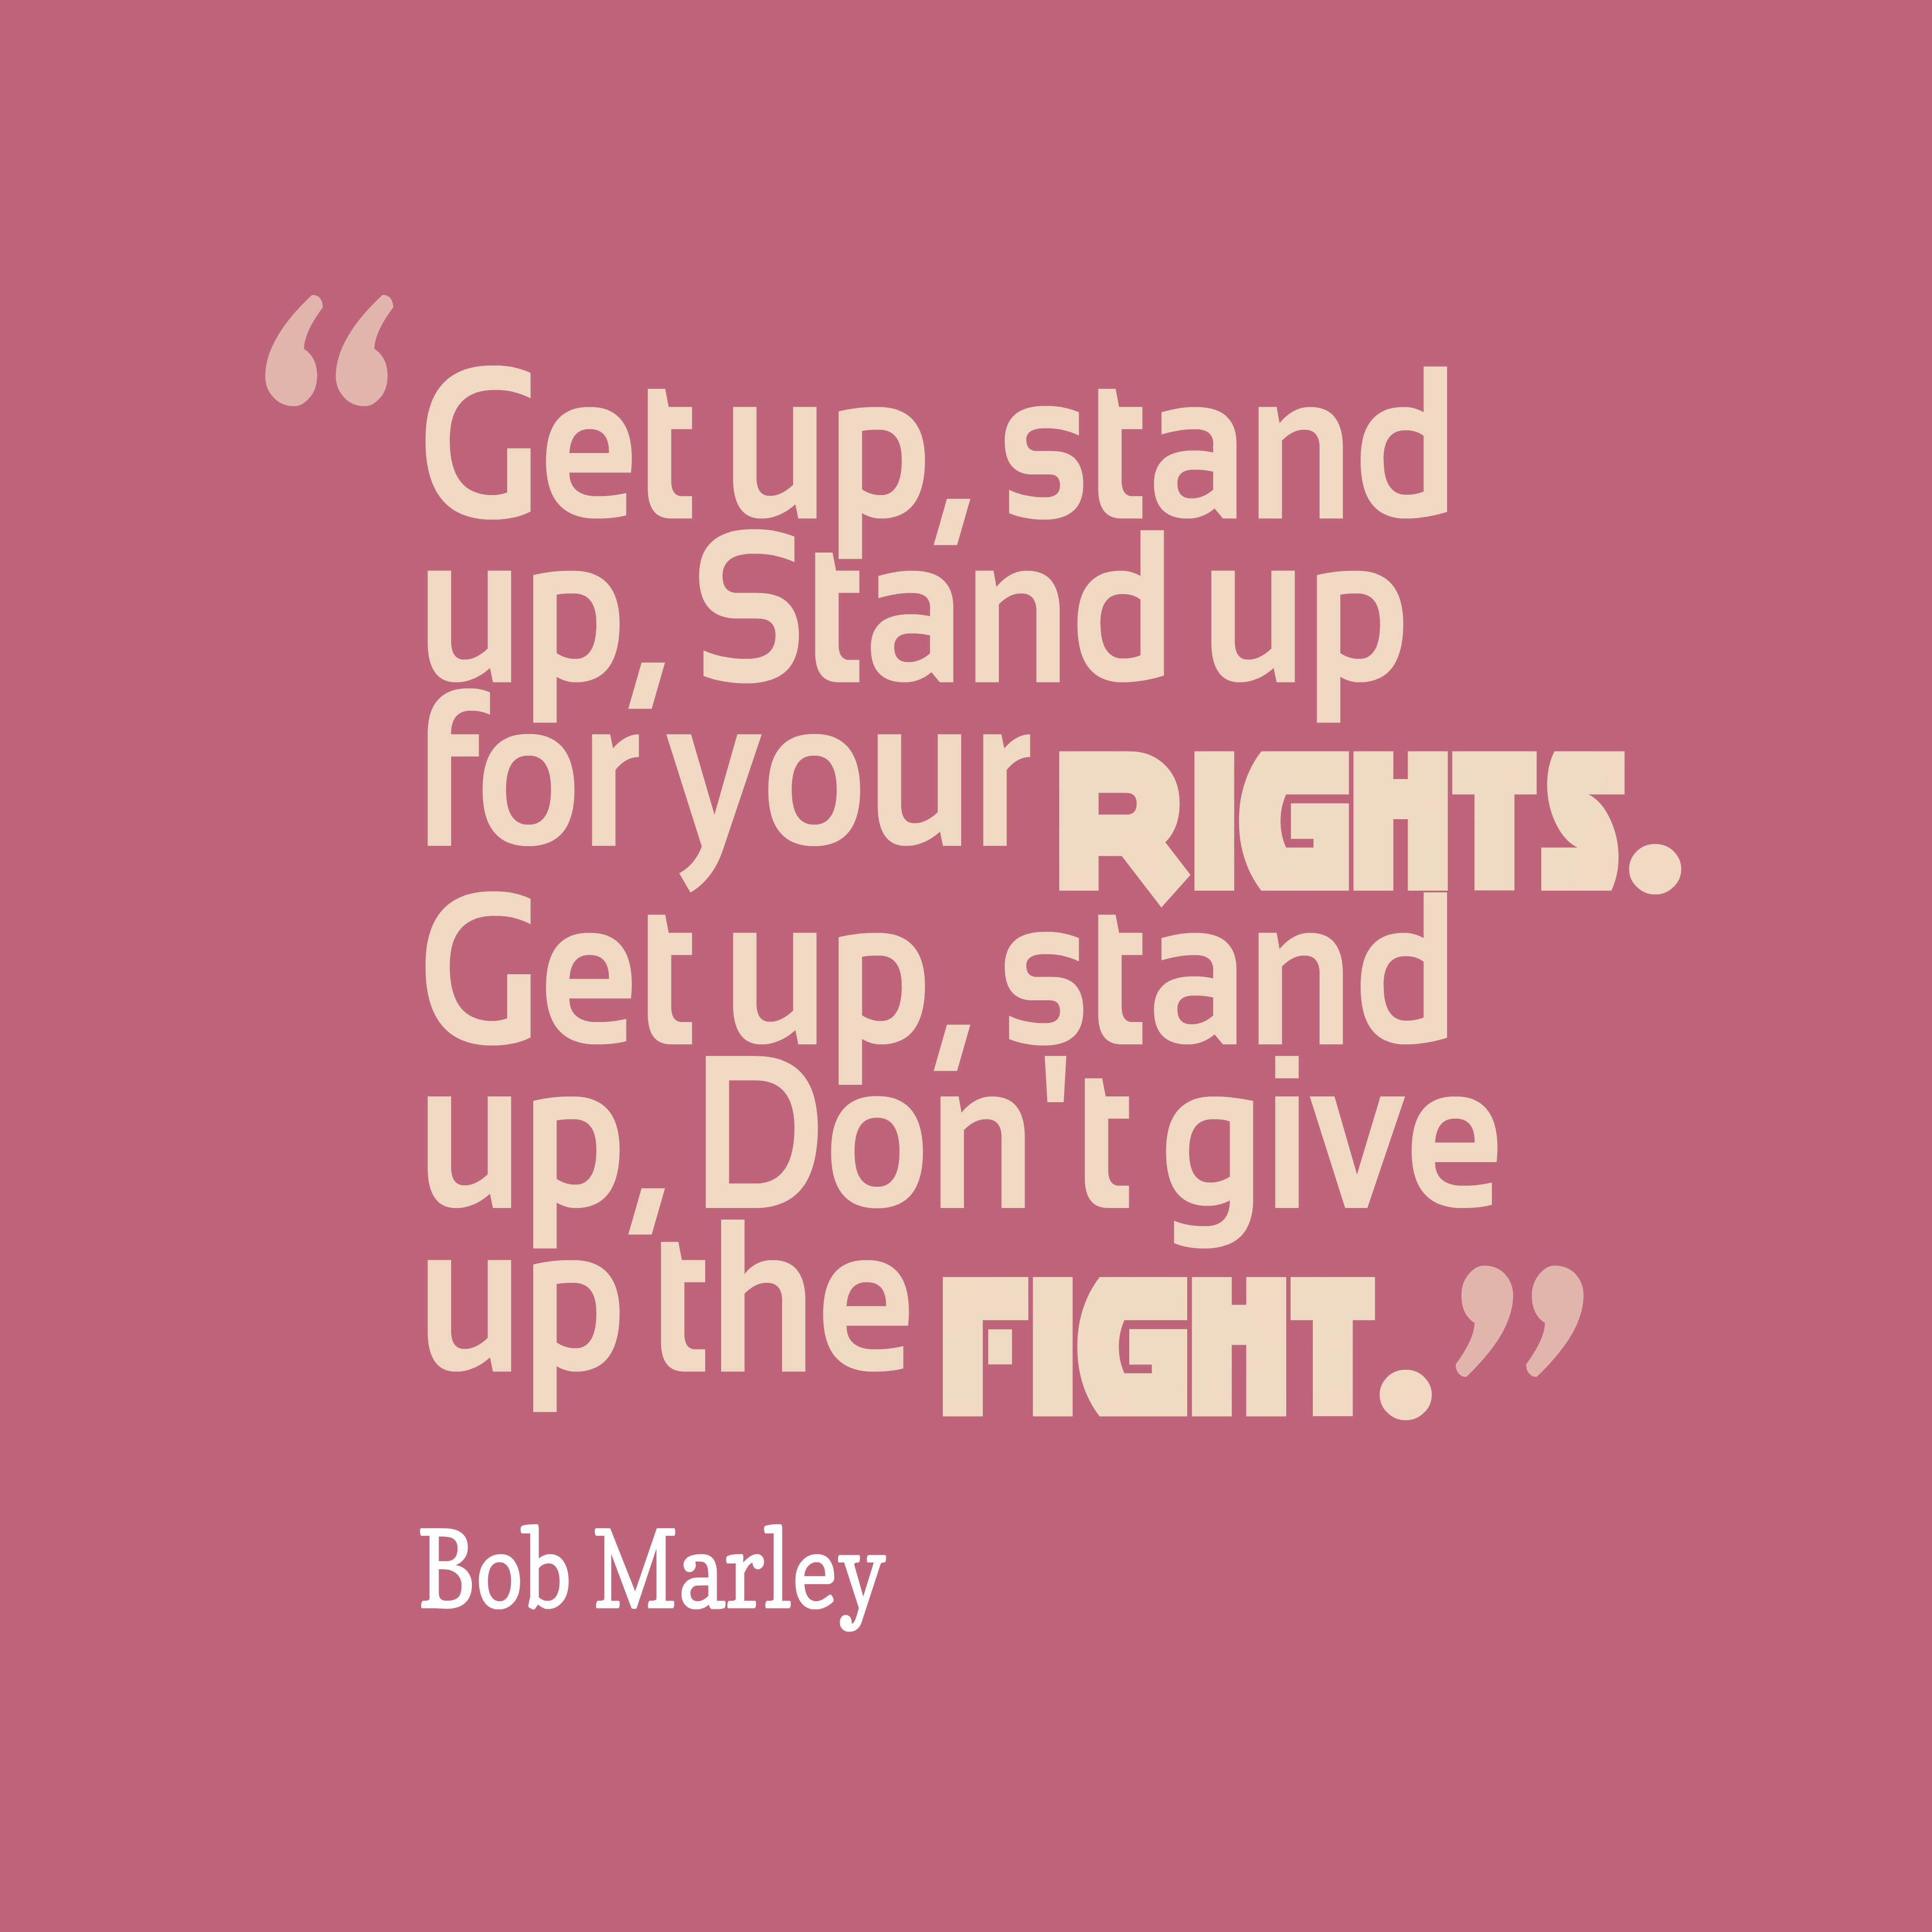 Ups Quotes: Picture » Bob Marley Wuote About Fight